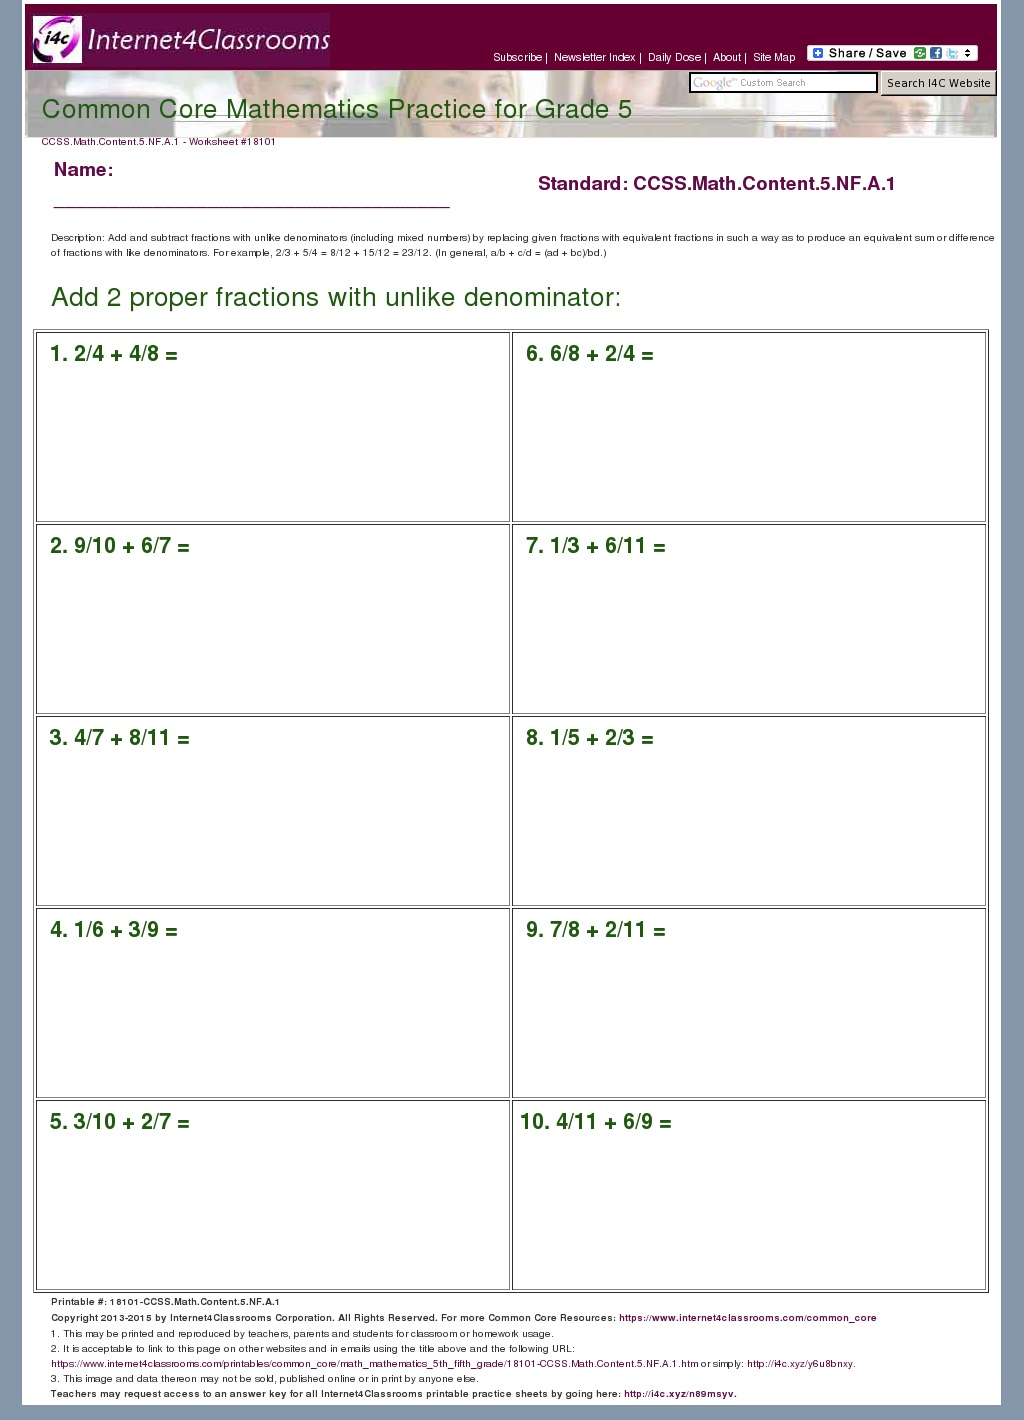 Description Download Worksheet 18101 Ccss Math Content